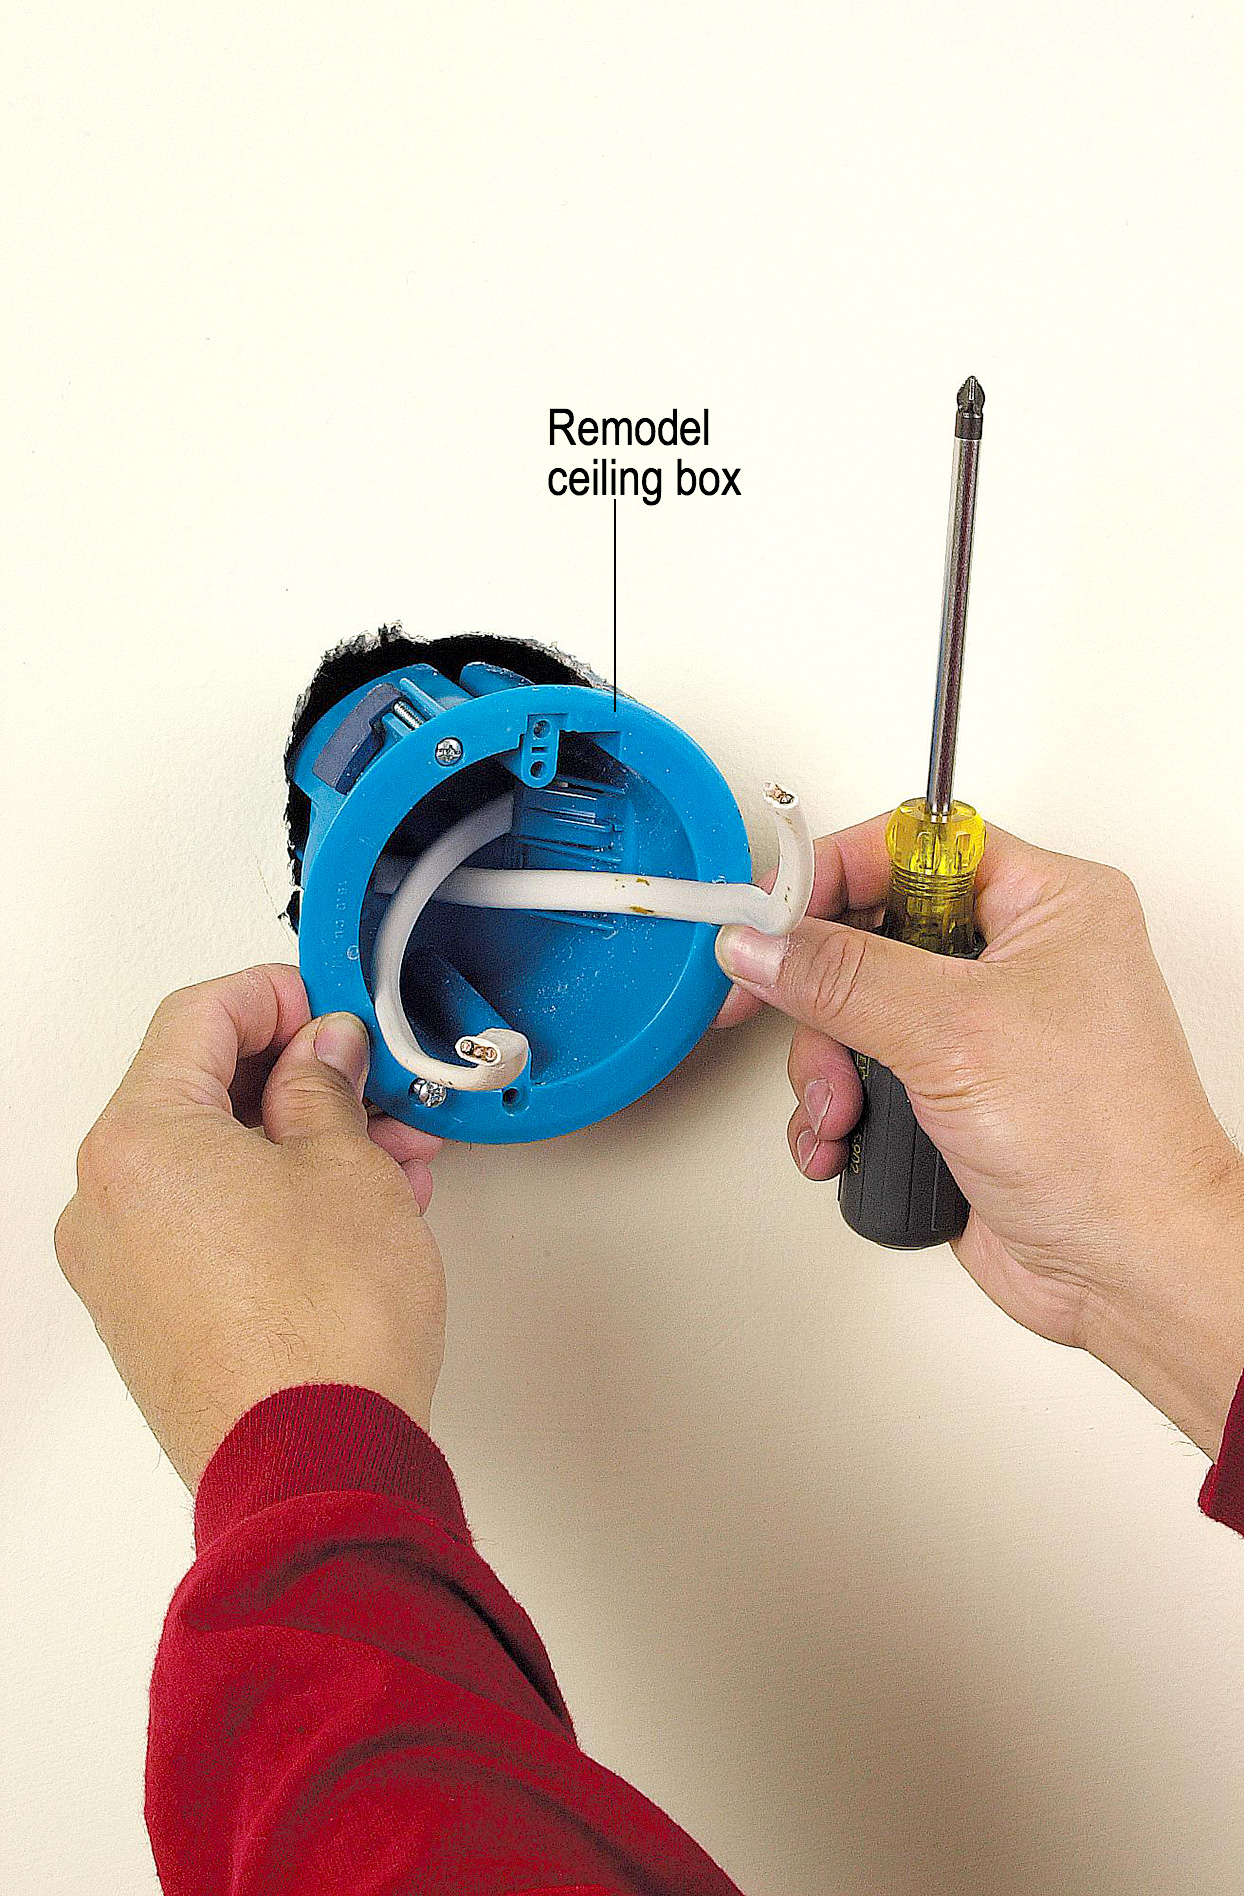 Running cable into wall hole